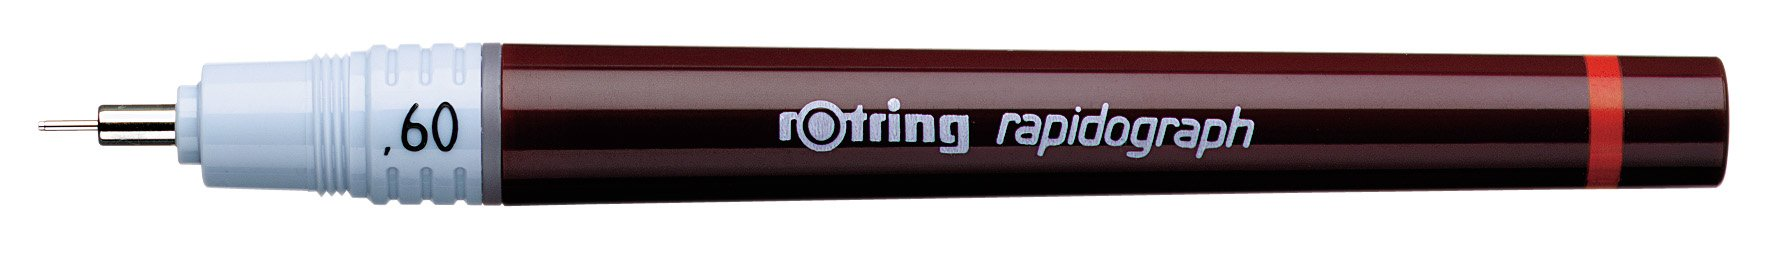 Rotring Rapidograph Technical Drawing Pen Junior Set, 3 Pens with Line Widths of 0.2mm to 0.6mm, Brown (S0699490) by Rotring (Image #4)